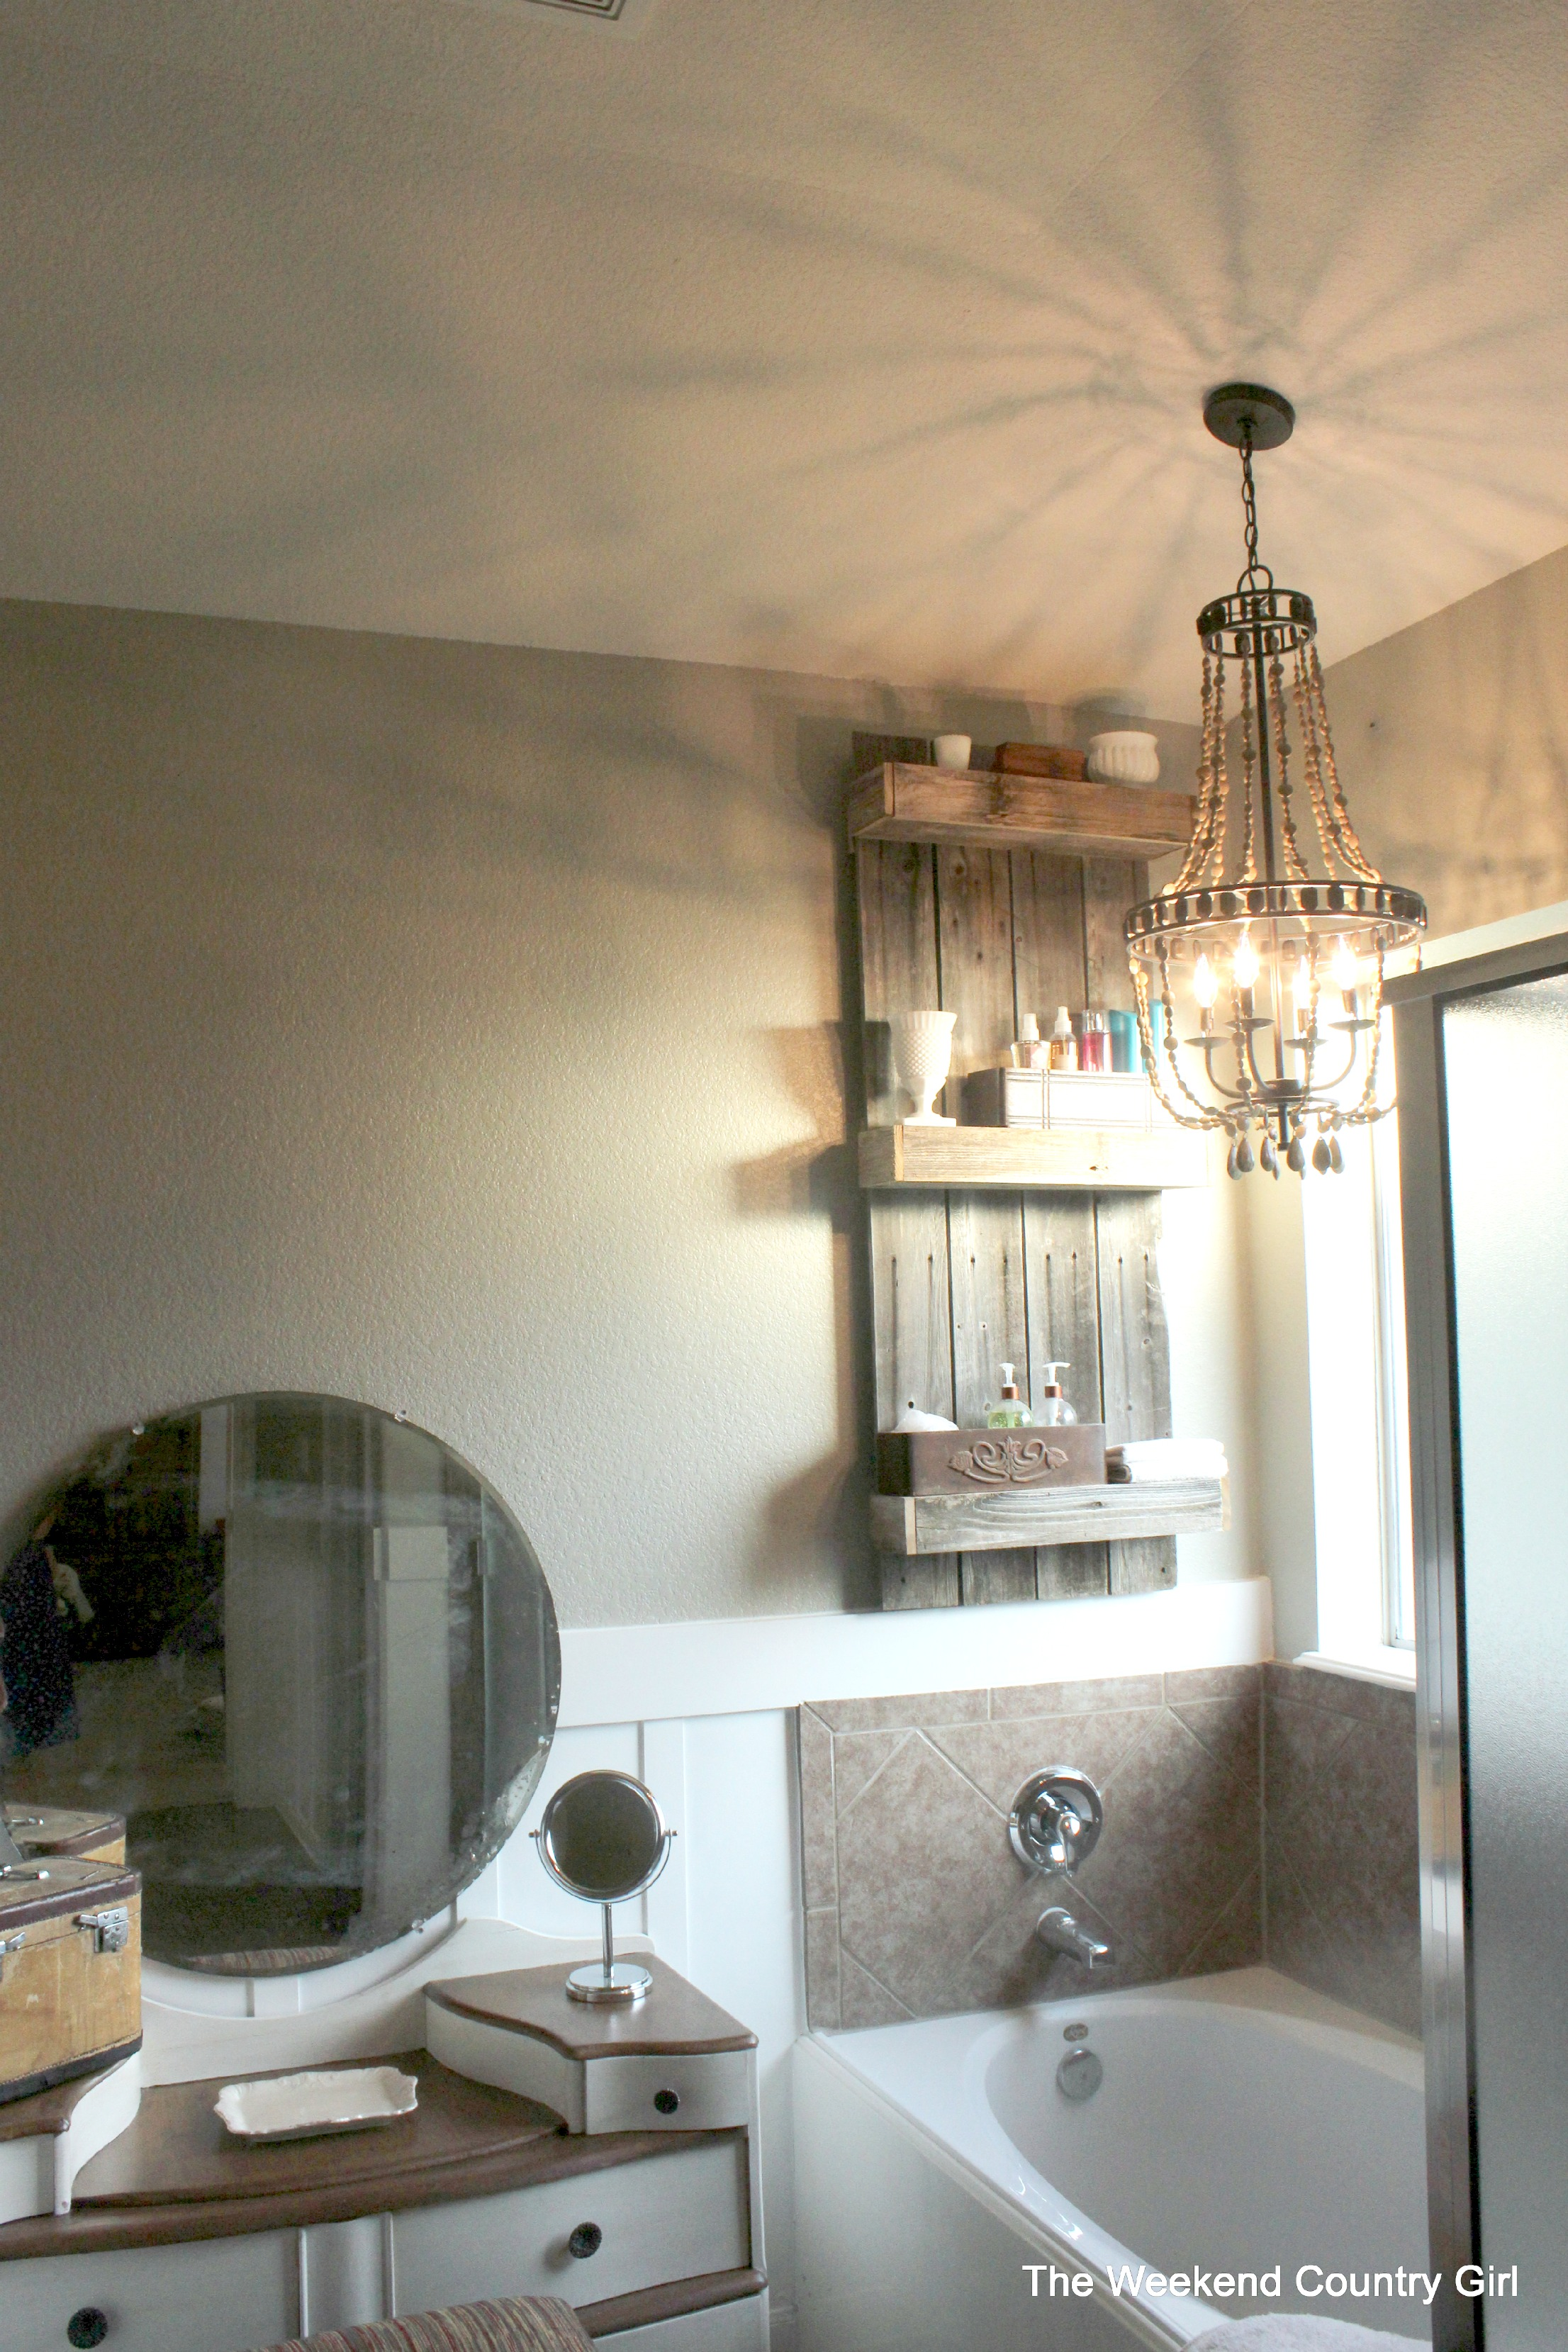 Easy Rustic Bathroom Shelf How To By Karen Of The Weekend Country